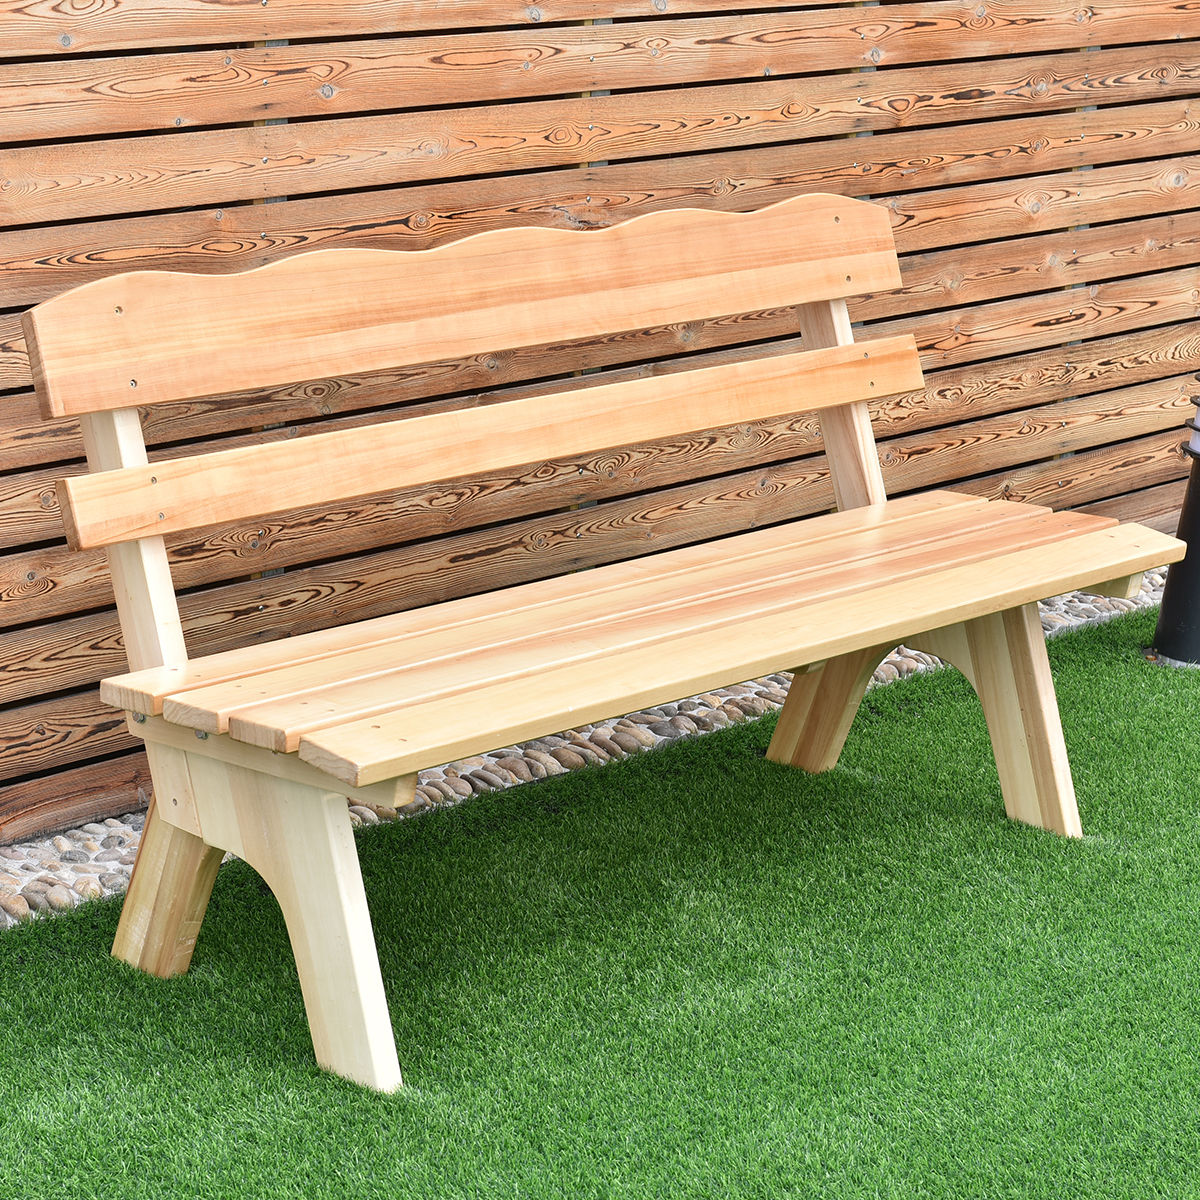 Giantex 5 Ft 3 Seats Outdoor Wooden Garden Bench Chair